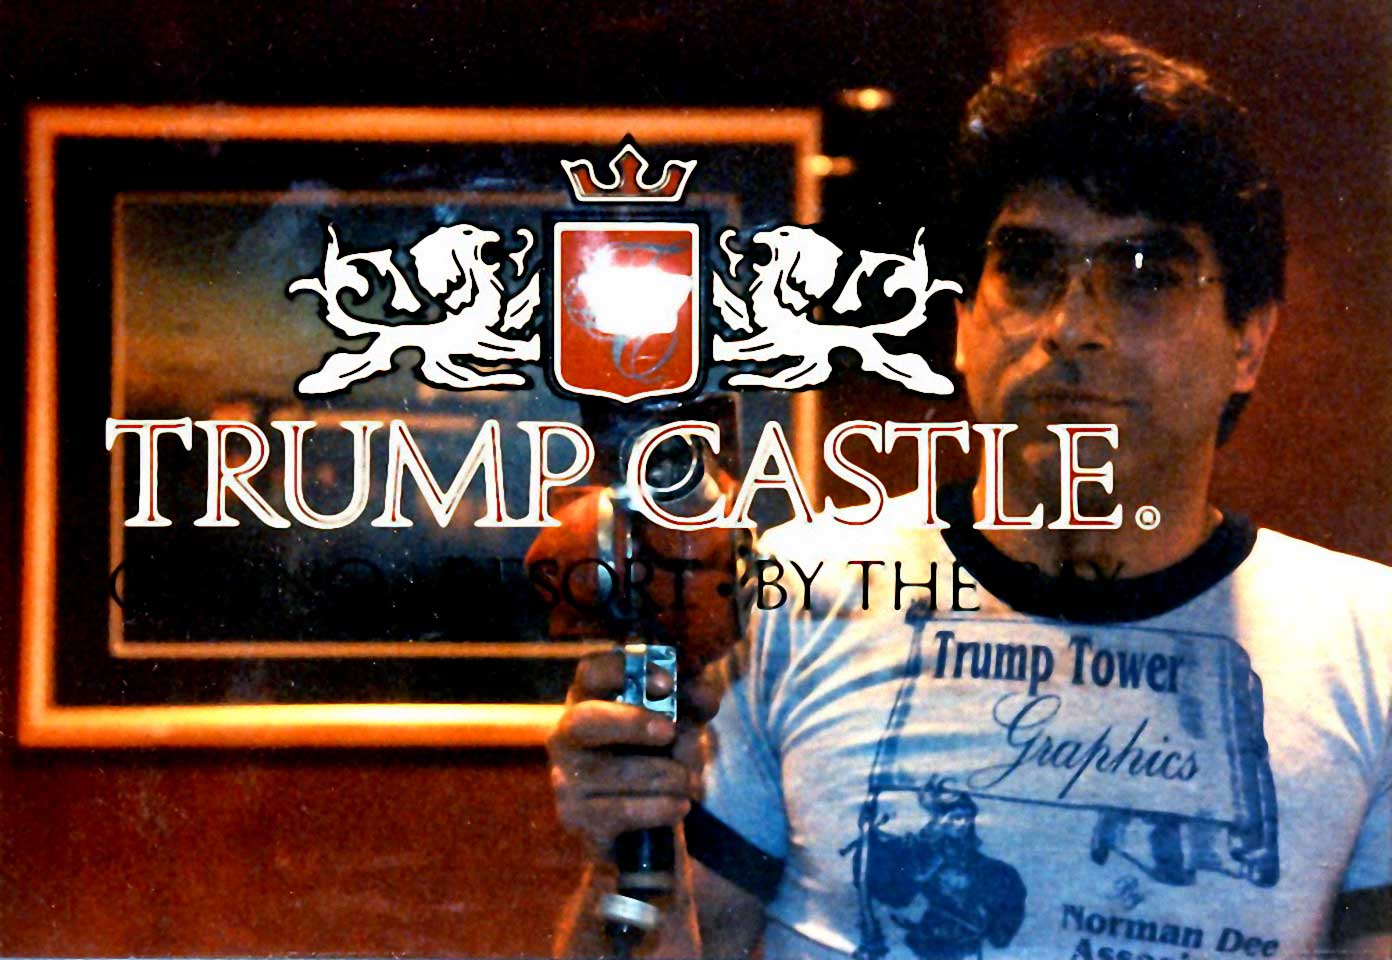 owner/founder Norman Dee posing with heat gun and screen printed glass that reads 'Trump Castle'